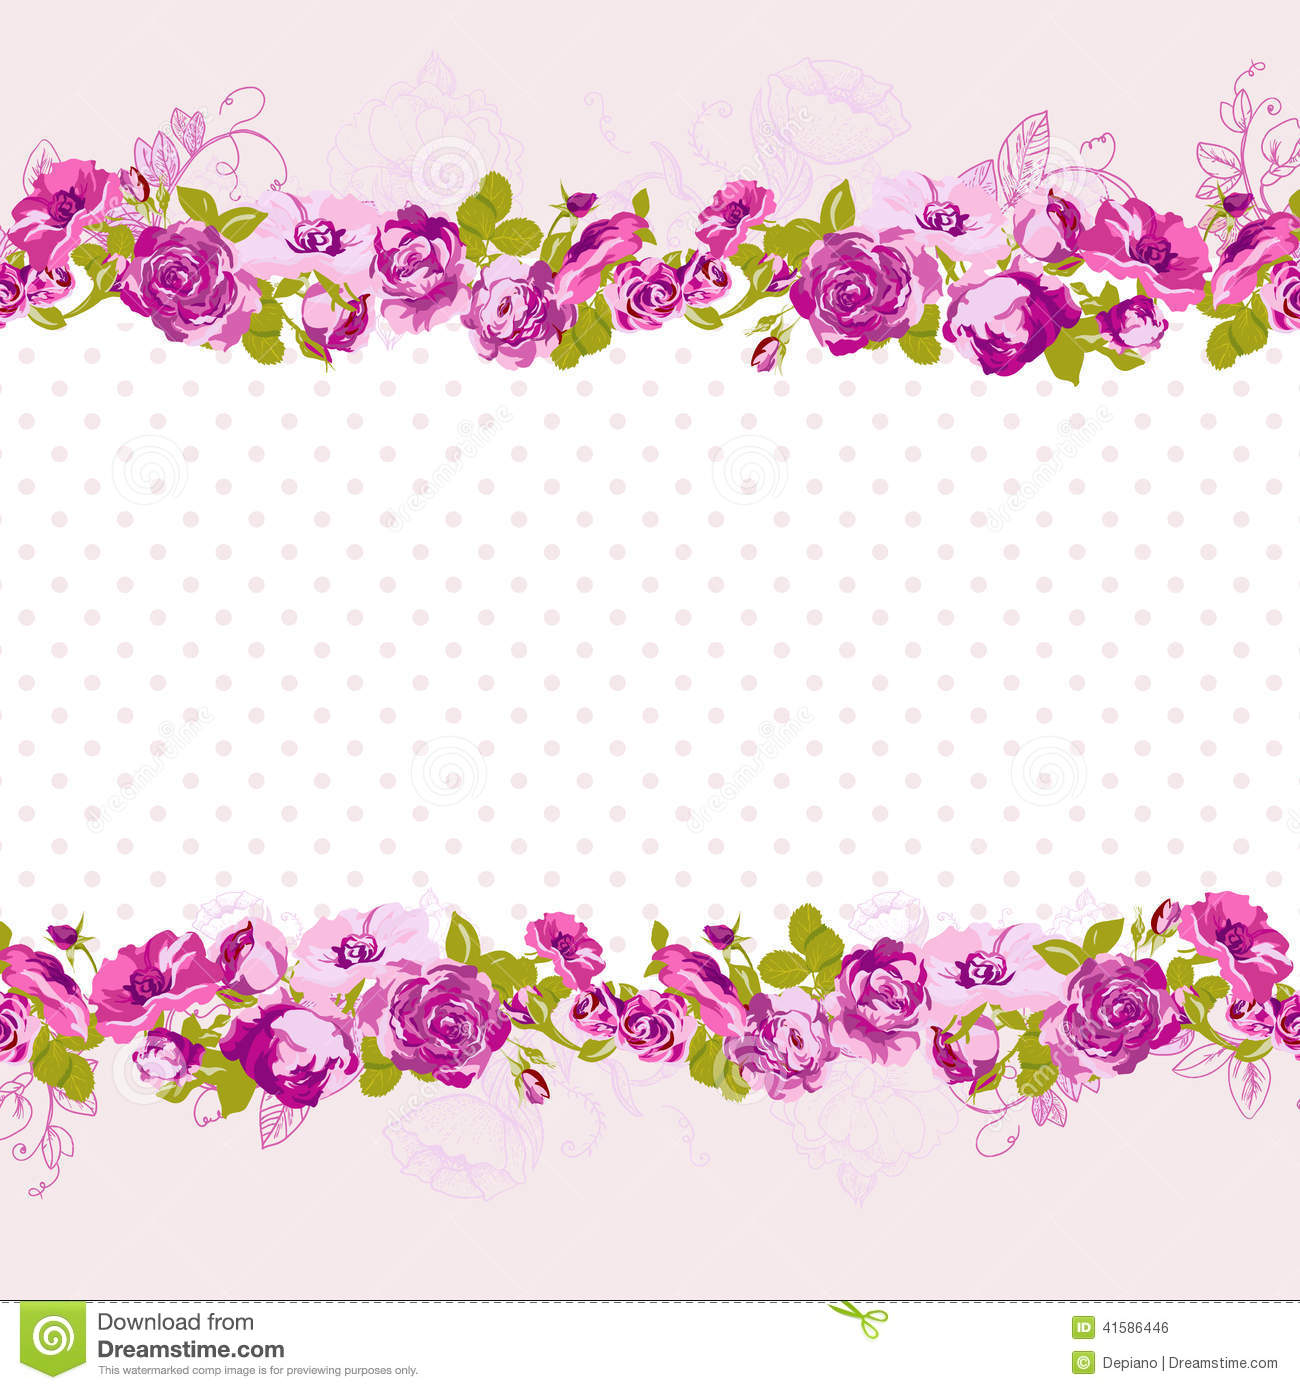 birthday greeting card background design ; seamless-border-blossom-roses-vector-floral-greeting-card-spring-background-wedding-birthday-invitation-design-41586446